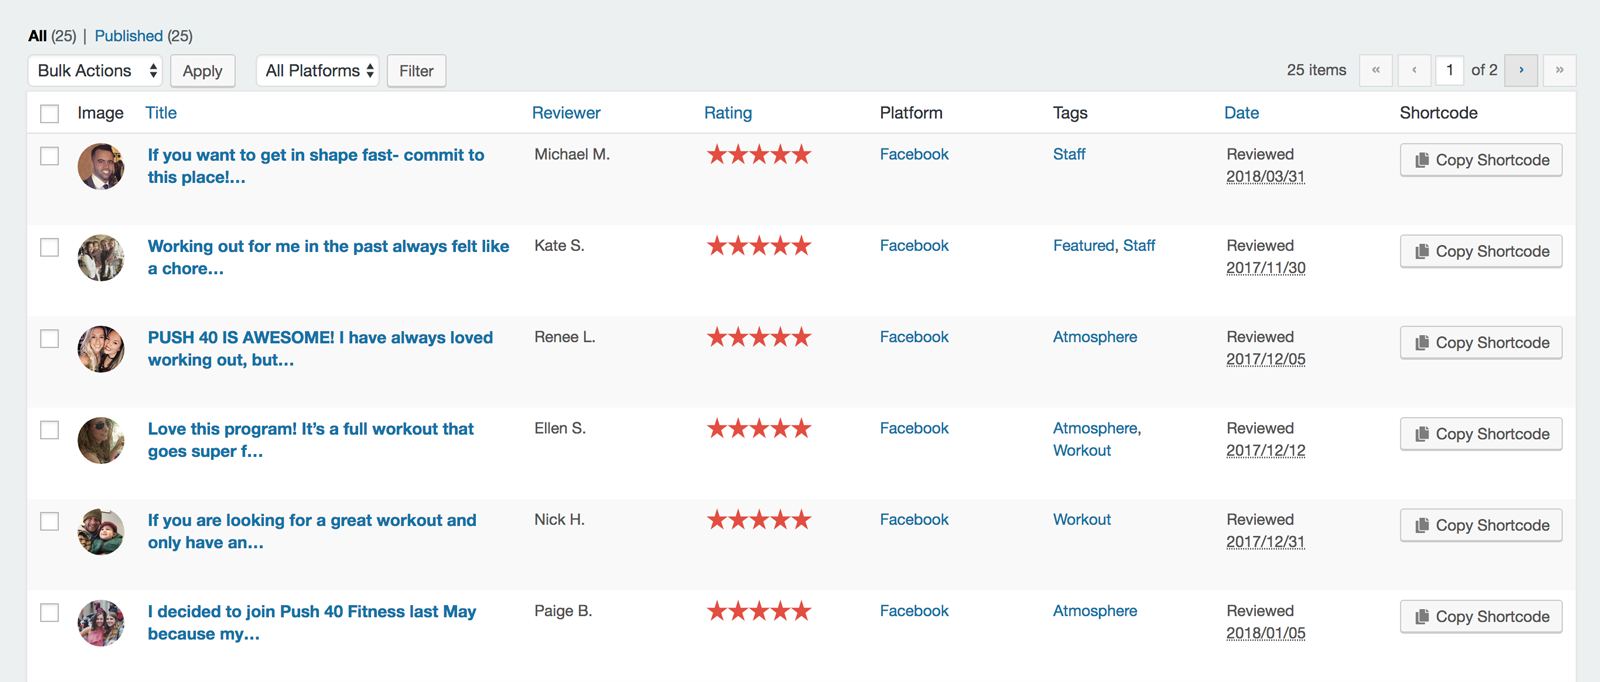 A list table of single reviews